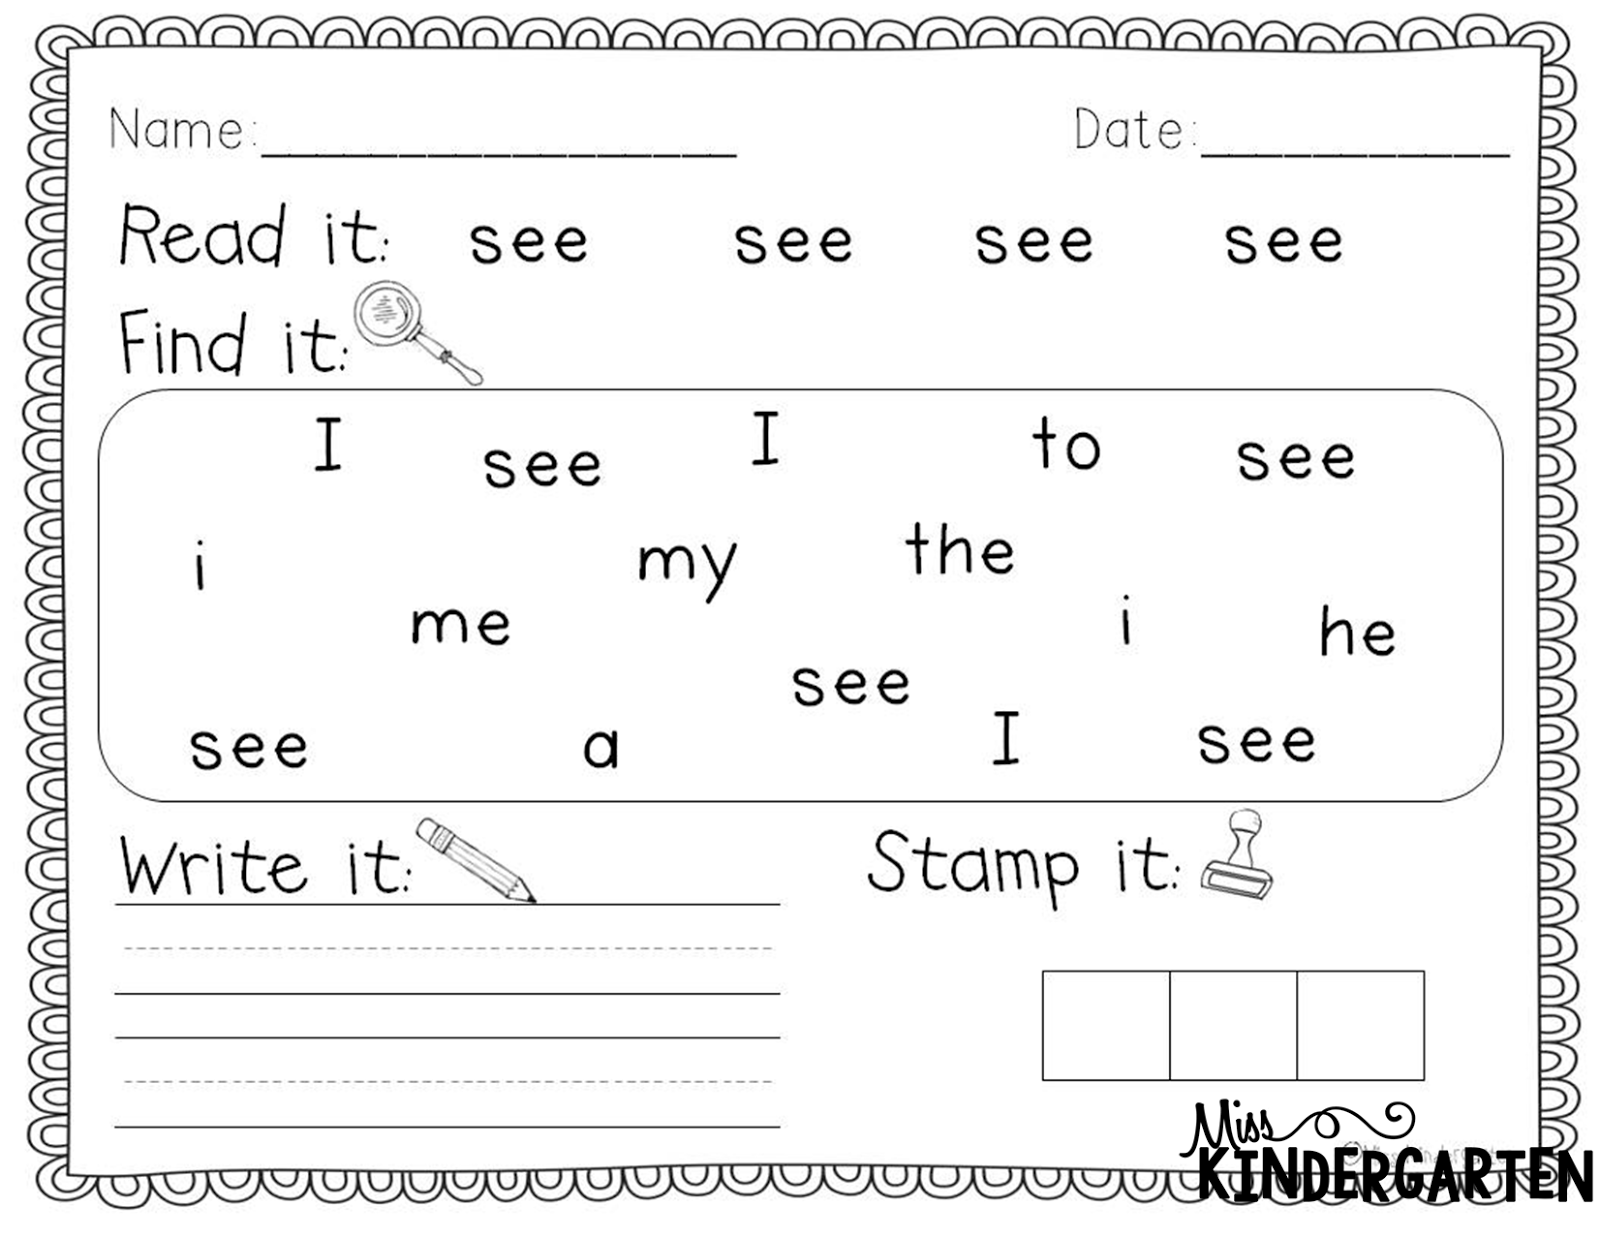 Worksheet Sight Words For Kindergarteners sight word practice miss kindergarten httpwww teacherspayteachers comproductsight word